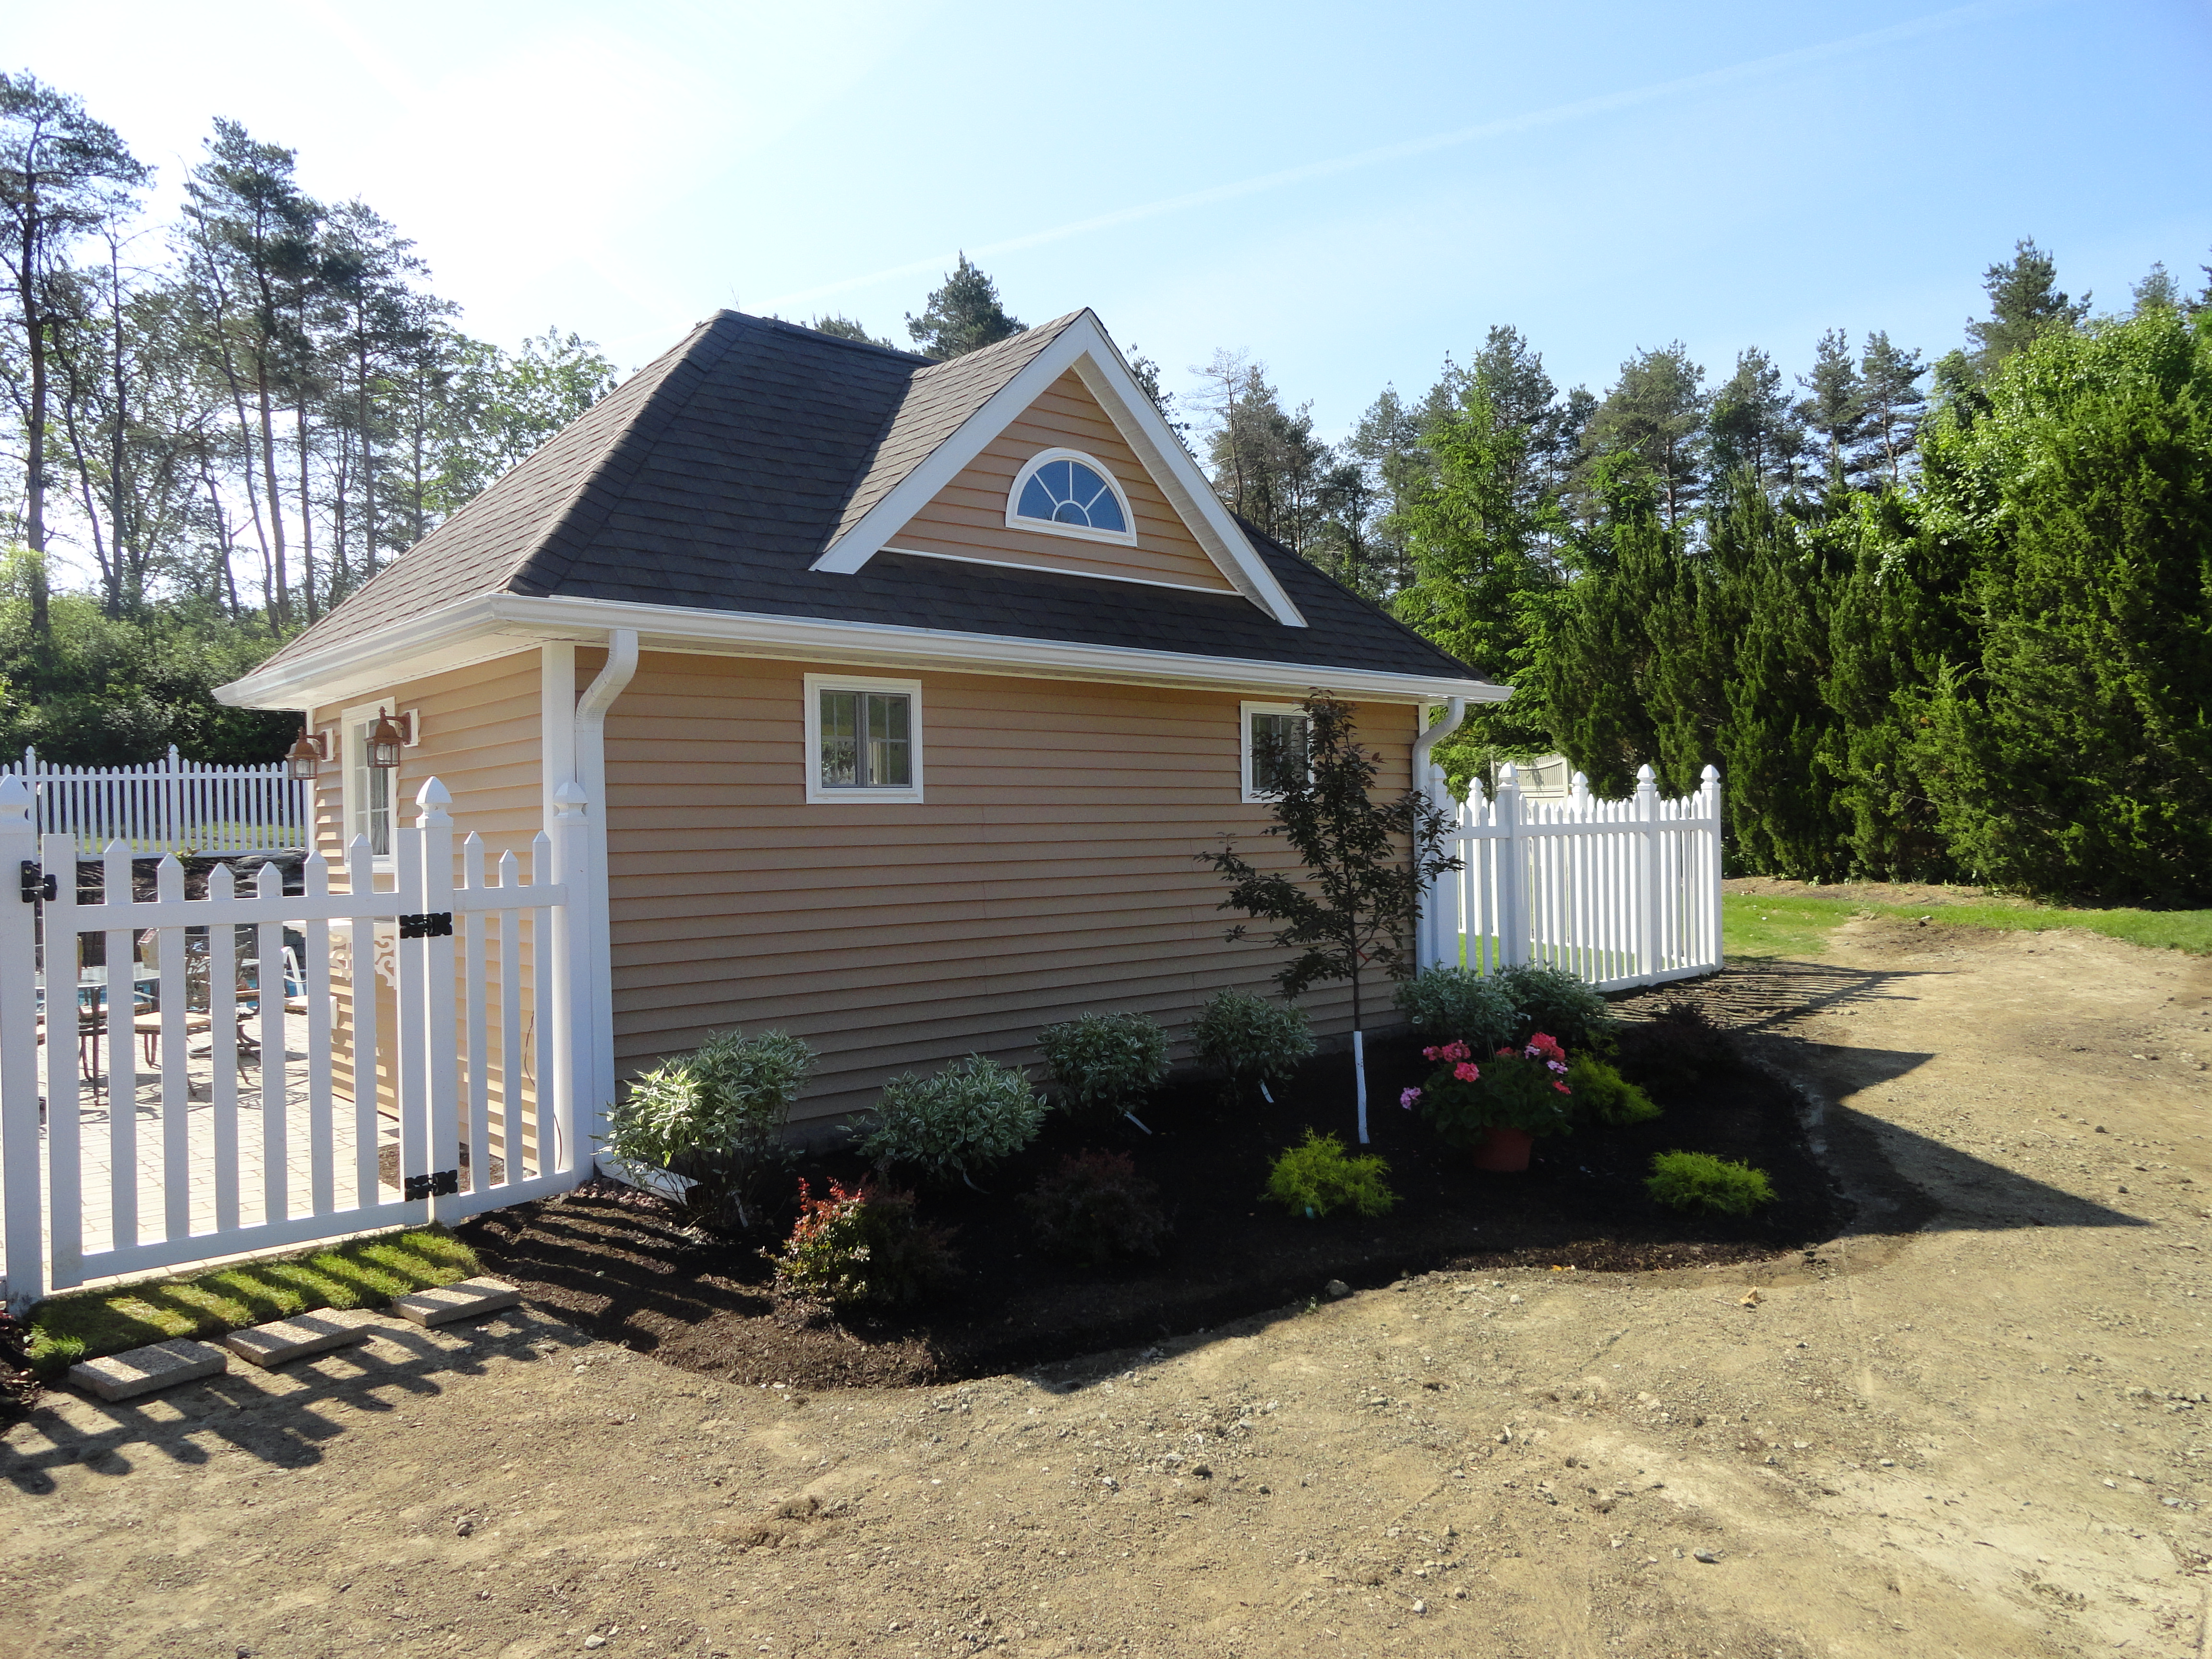 Outdoor Living | Patriot Construction of Upstate New York ... on Patriot Outdoor Living id=53106